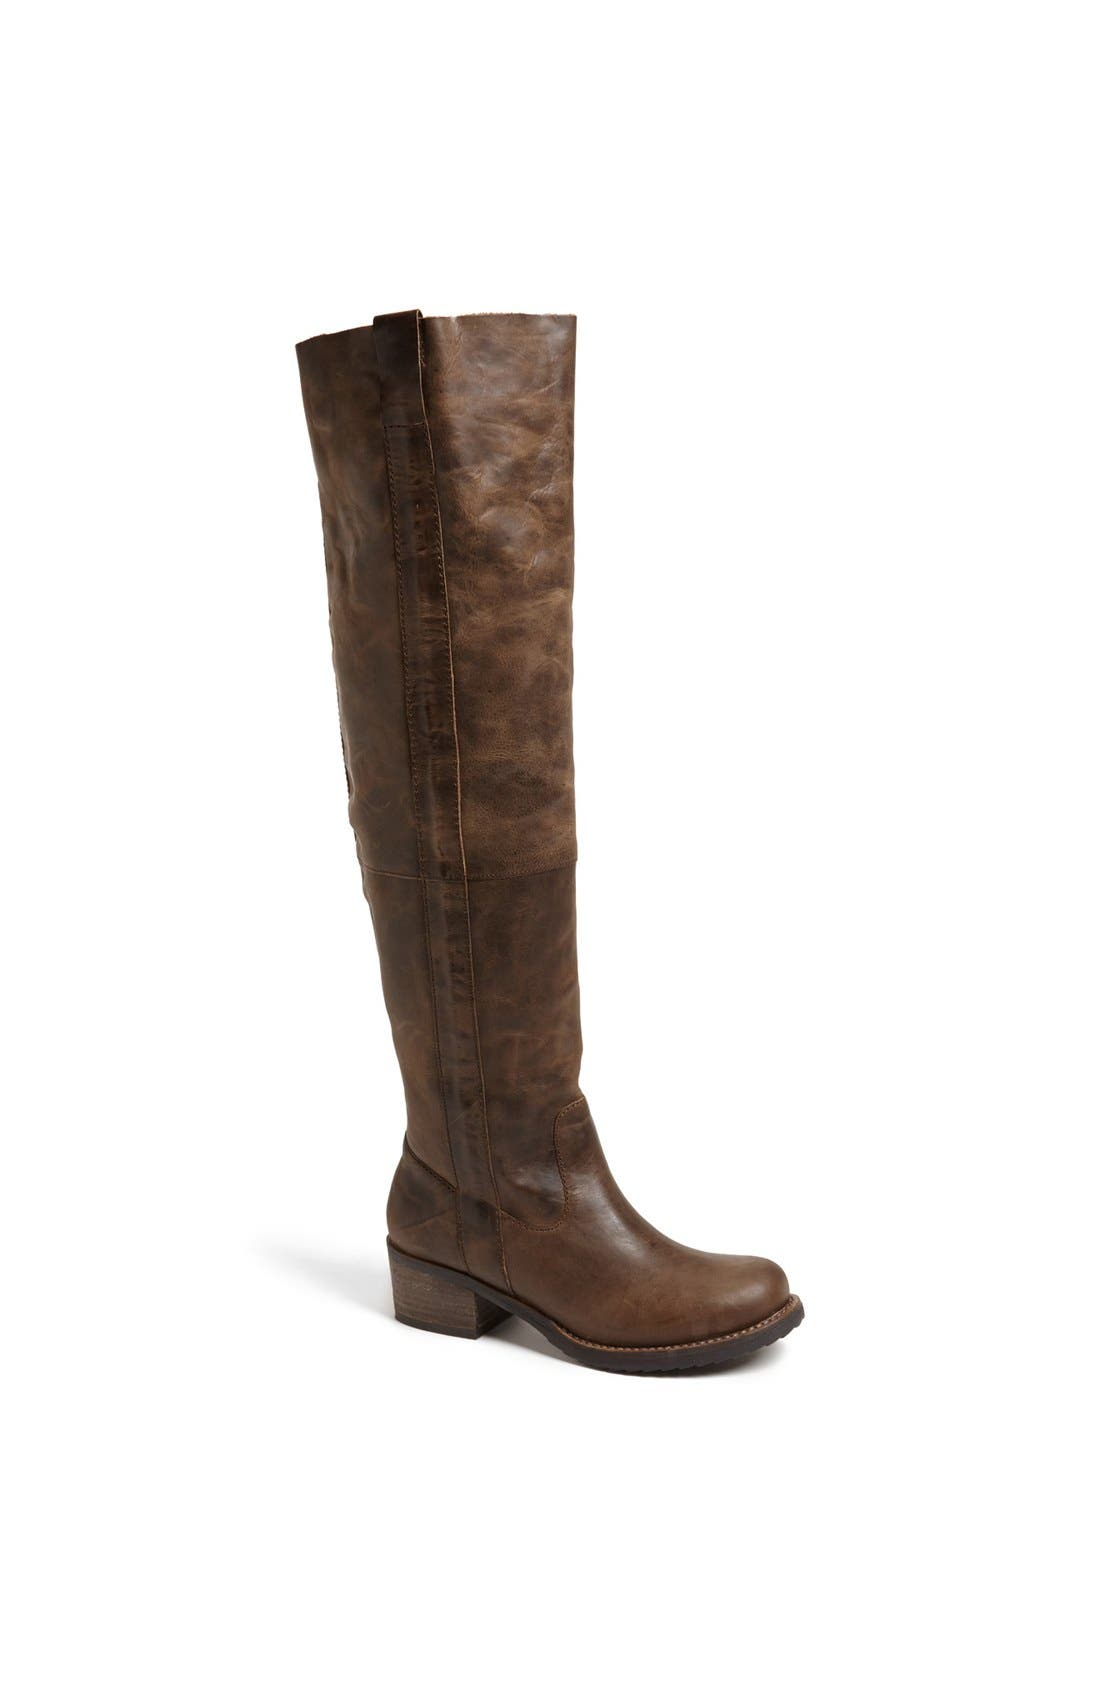 Main Image - Steve Madden 'Maisie' Leather Over the Knee Boot